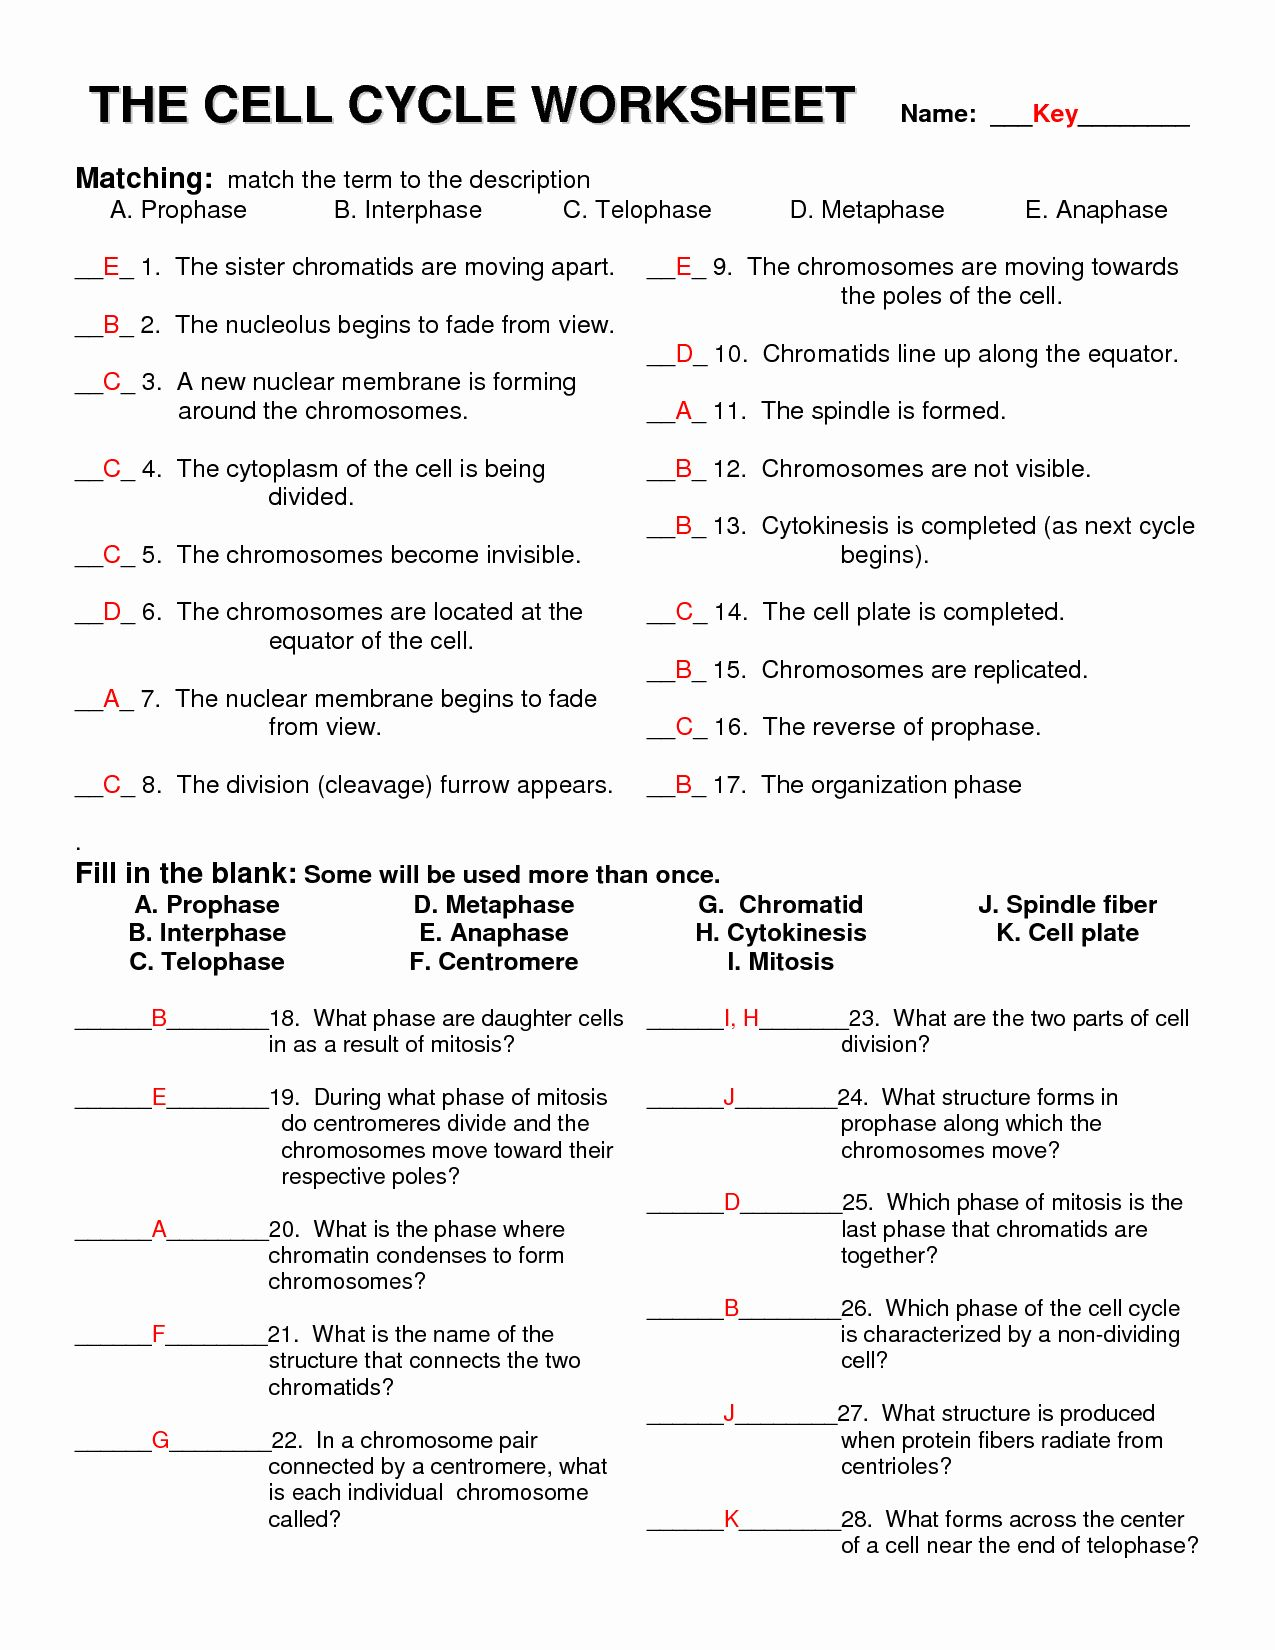 Osmosis Worksheet 20 Points